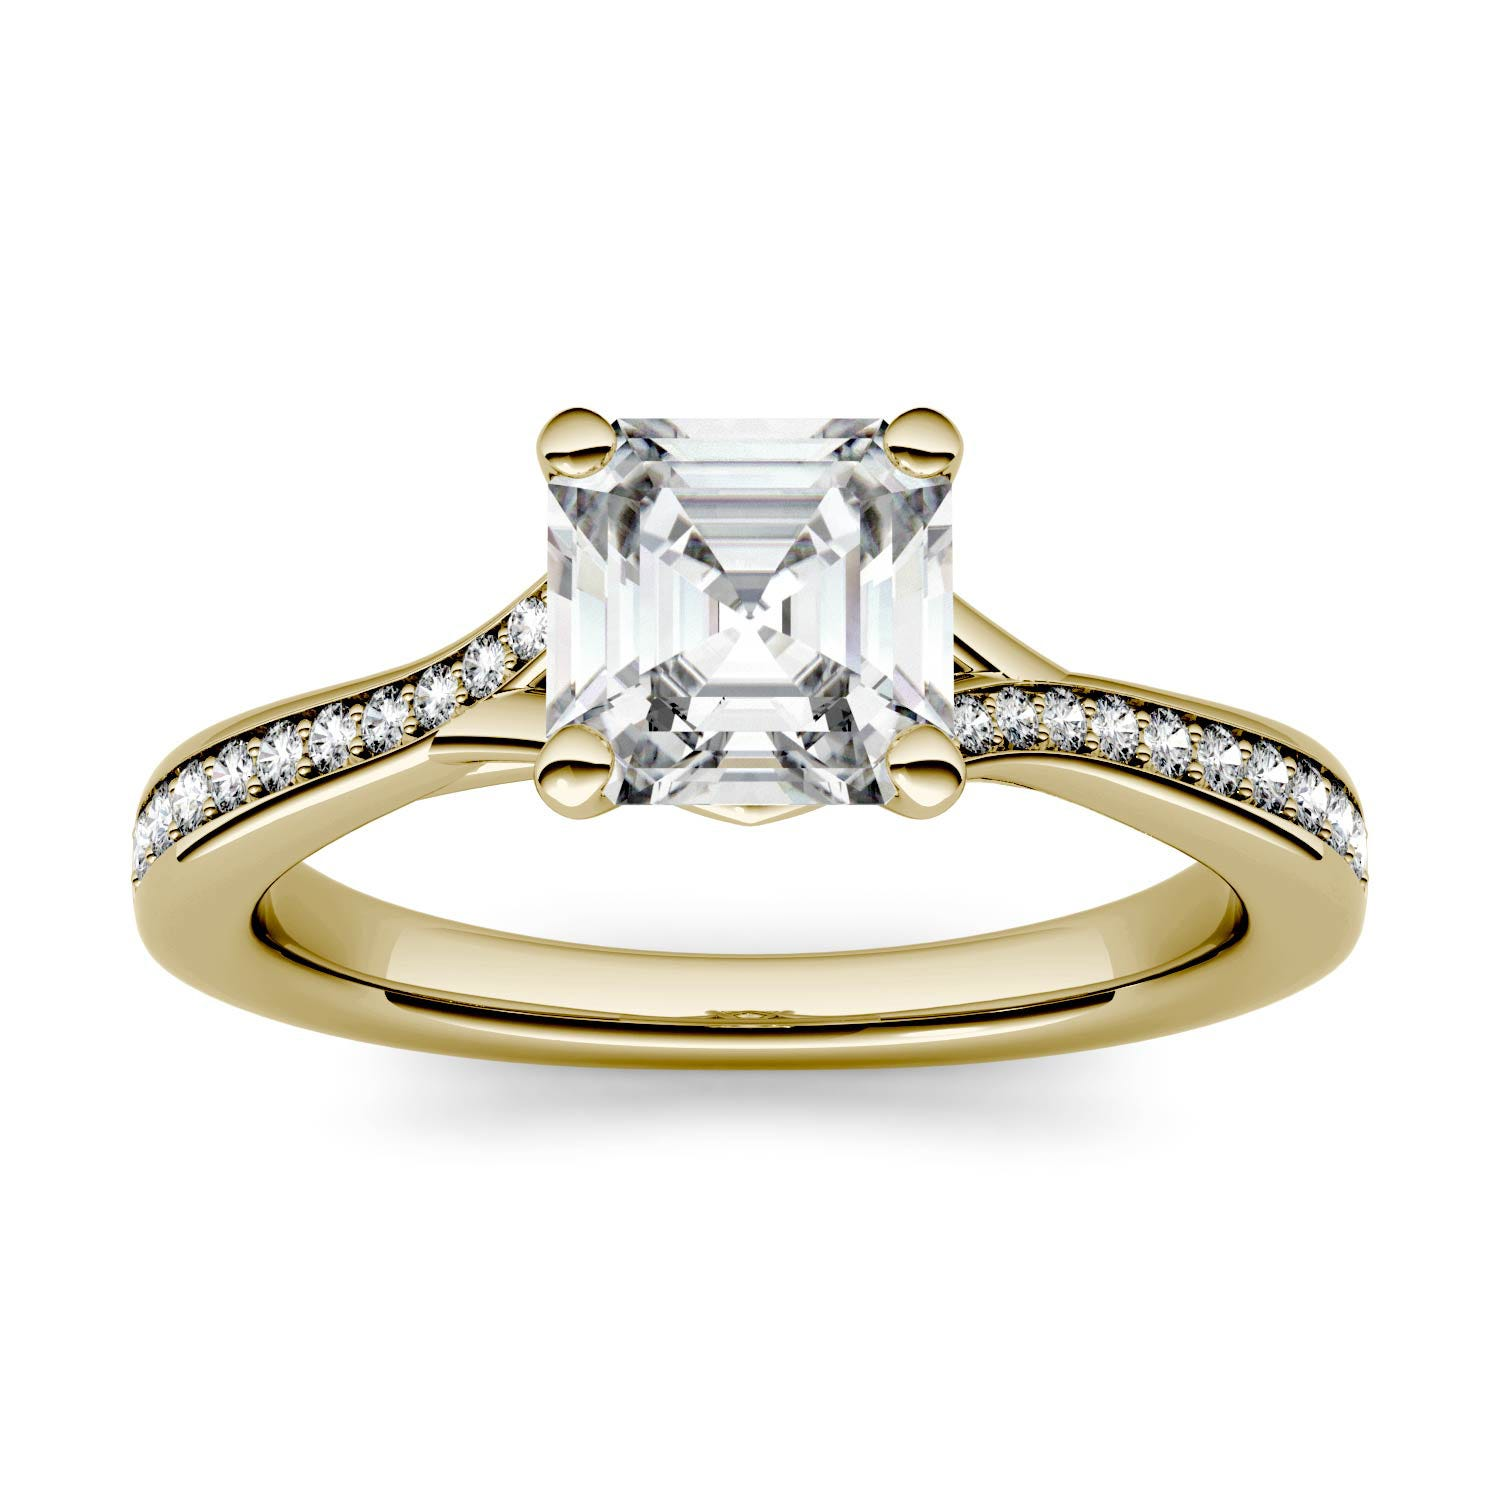 Asscher 1.29cttw DEW Moissanite Solitaire with Side Accents Engagement Ring in 14K Yellow Gold 500115